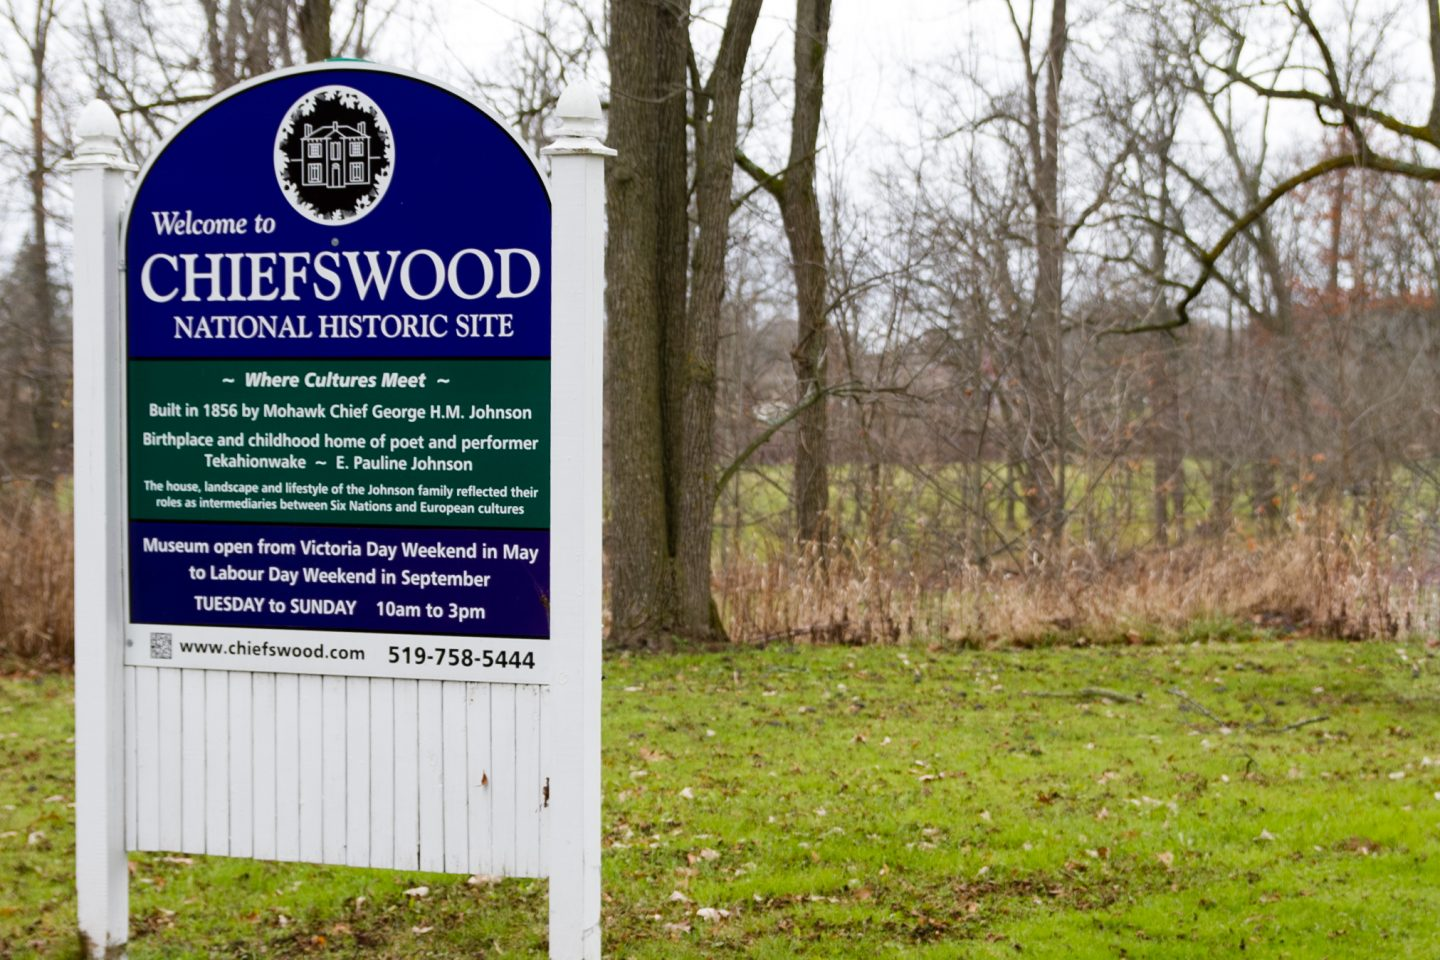 2 for 1 Admission at Chiefswood National Historic Site